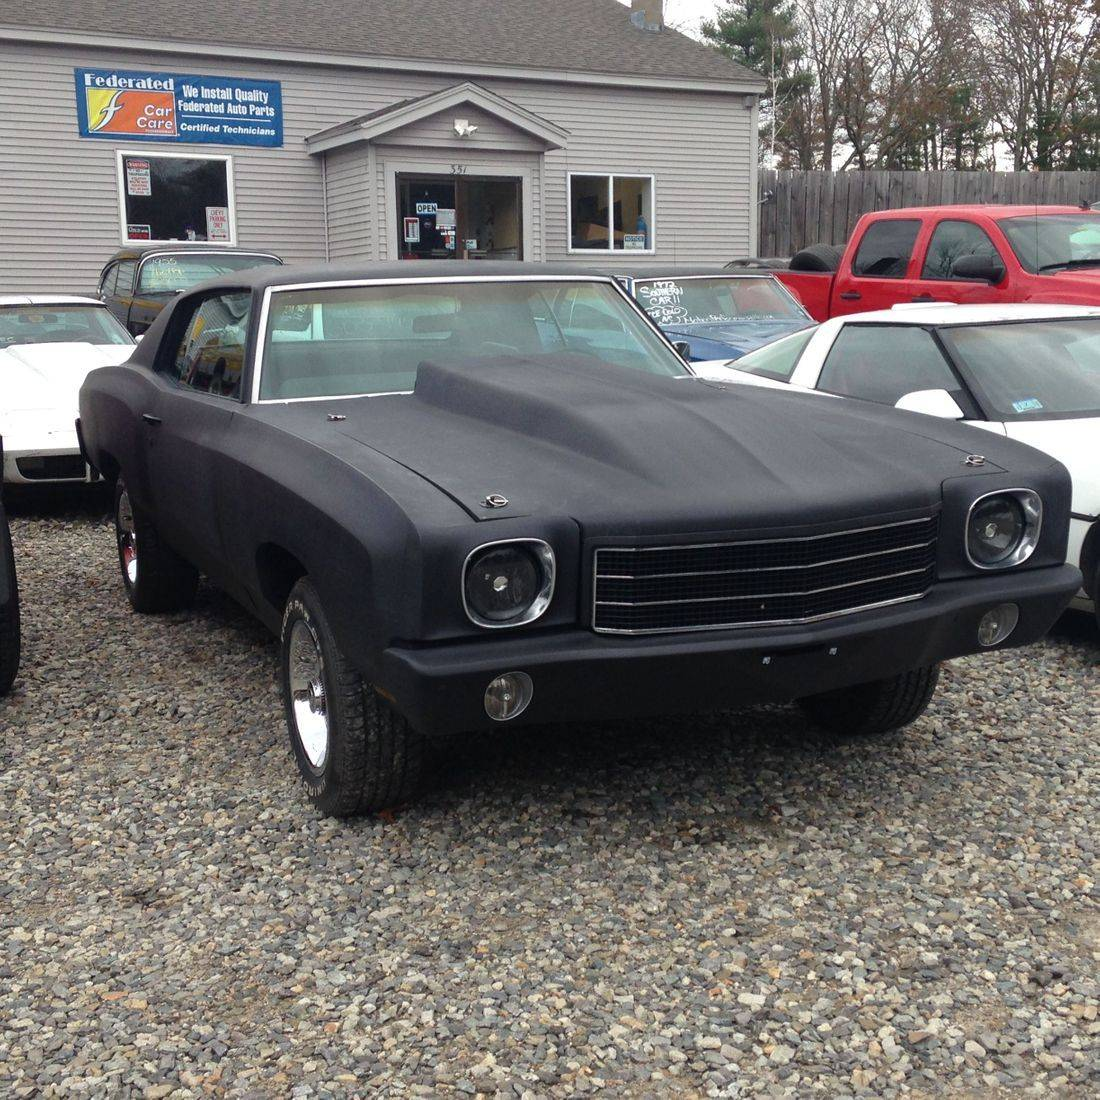 murder monte, camaro, corvette, old corvette, car show, longhorn, 55 chevy,  performance dodge, harley parts, cheap cars, suv, used cars near me, mechanic near me,  oil change near me, auto repair near me,  car inspection near me, car inspection, mechanics, mechanics near me,  inspection sticker, NH sticker, NH inspection sticker, New hampshire inspection sticker, vehicle inspection near me, auto inspection,  bmw, honda motorcycles, cycle trader, yamaha motorcycles, mustang, ford mustang, bmw motorcycles, motorcycle sticker, indian motorcycles, roadside assistance, towing near me, tow truck near me, tow company near me, tow company, towing service, towig service near me, engine repair, transmission, transmission repair, radiator repair, air conditioner repair, exhaust repair, a/c repair, front end repair, exhaust repair near me, radiator repair near me, ac repair, car ac,  buy tires, tire repair, tire repair near me, tires and wheels, wheels and tires for sale, jeep, jeeps for sale, jeeps for sale near me, used jeeps for sale, used jeeps for sale near me, jeep repair, jeep repair near me, jeep wrangler for sale, jeep cherokee, jeep yj, jeeps yj for sale, jeep wrangler, used jeep wrangler for sale, lifted jeep, lifted jeeps, lifted jeeps fpr sale, jeep cj, jeep tj, ford for sale, chevy for sale, dodge for sale, chevelle for sale, chevelle, masters delux, masters deluxe, bel air, covertable for sale, impala for sale, ford galaxy 500, ford galaxy,  ford galaxie, ford galaxie 500, 1955 chevy, burnout, burnouts, burn out, 1972 vette 454, 454, chevy big block, big block chevys, chevy big blocks, camaro rs-ss, camaro rsss, drag cars, dragcar, drag car, classic car show, jump start, locked out,  Sales and service shop Brentwood NH, Sales and service shop, sales and service, car trouble, repair shop, automotive, car sales, trucks for sale, truck sales, cars for sale, motorcycle repair, motorcycle sales, motorcycles for sale, 4x4 for sale, plows for sale, campers for sale,  Brentwood NH, New Hampshire, cars dealerships Brentwood NH, car dealership Brentwood NH, cars Brentwood New Hampshire, trucks Brentwood NH, Antique cars New Hampshire, classic cars New Hampshire, dealerships near me, used car lot, used car lots, used car dealers, used car dealer, used cars near me,  Cars NH, oil change, 03833, used car, used cars, car, cars, sale, auto, autos, vehicle, dealer, classic cars NH, antiques NH, Inspection station NH, Inspection Brentwood NH, automotive shop Brentwood NH,  autos for sale NH, oil change NH, car tune up NH, family owned dealership, family owned car lot, family owned service shop, service shop, shop, state inspection, NH state inspection, Inspection station, state inspection NH, motion performance, motion performance NH, motion performance LLC,  mechanic, brakes, mechanics, transmissions, auto shop Brentwood, auto shop, transmission problem, brake repair, vehicle, auto, used car, preowned, pre owned, preowned car, used plow, used truck, used motorcycle, old cars, old trucks, automobile, dealer, dealer ship, Motion LLC, Motion, Performance, MP LLC, motionperformance, motionperformancellc, should I buy a used car?, buy a used car, buy a used motorcycle? Exeter used cars, Brentwood used cars, NH used cars, NH dealers, NH, affordable car, buy here pay here, payment on car, chevy car, chevy truck, Harley Davidson, Ford, Buick, Chrysler, used chevy, used 4x4, cheap car, cheap truck, cheap motorcycle, tow, tow truck, towing, 24 hour towing, car inspection, where car I get my car inspected?, where can I get my truck inspected?, where can I my motorcycle inspected?, where can I get my motorcycle inspected, where can I get my car inspected, NH inspections, commercial vehicle, CDL, New car inspection, engine, rebuild, custom, car restoration, antique restoration, truck restoration,